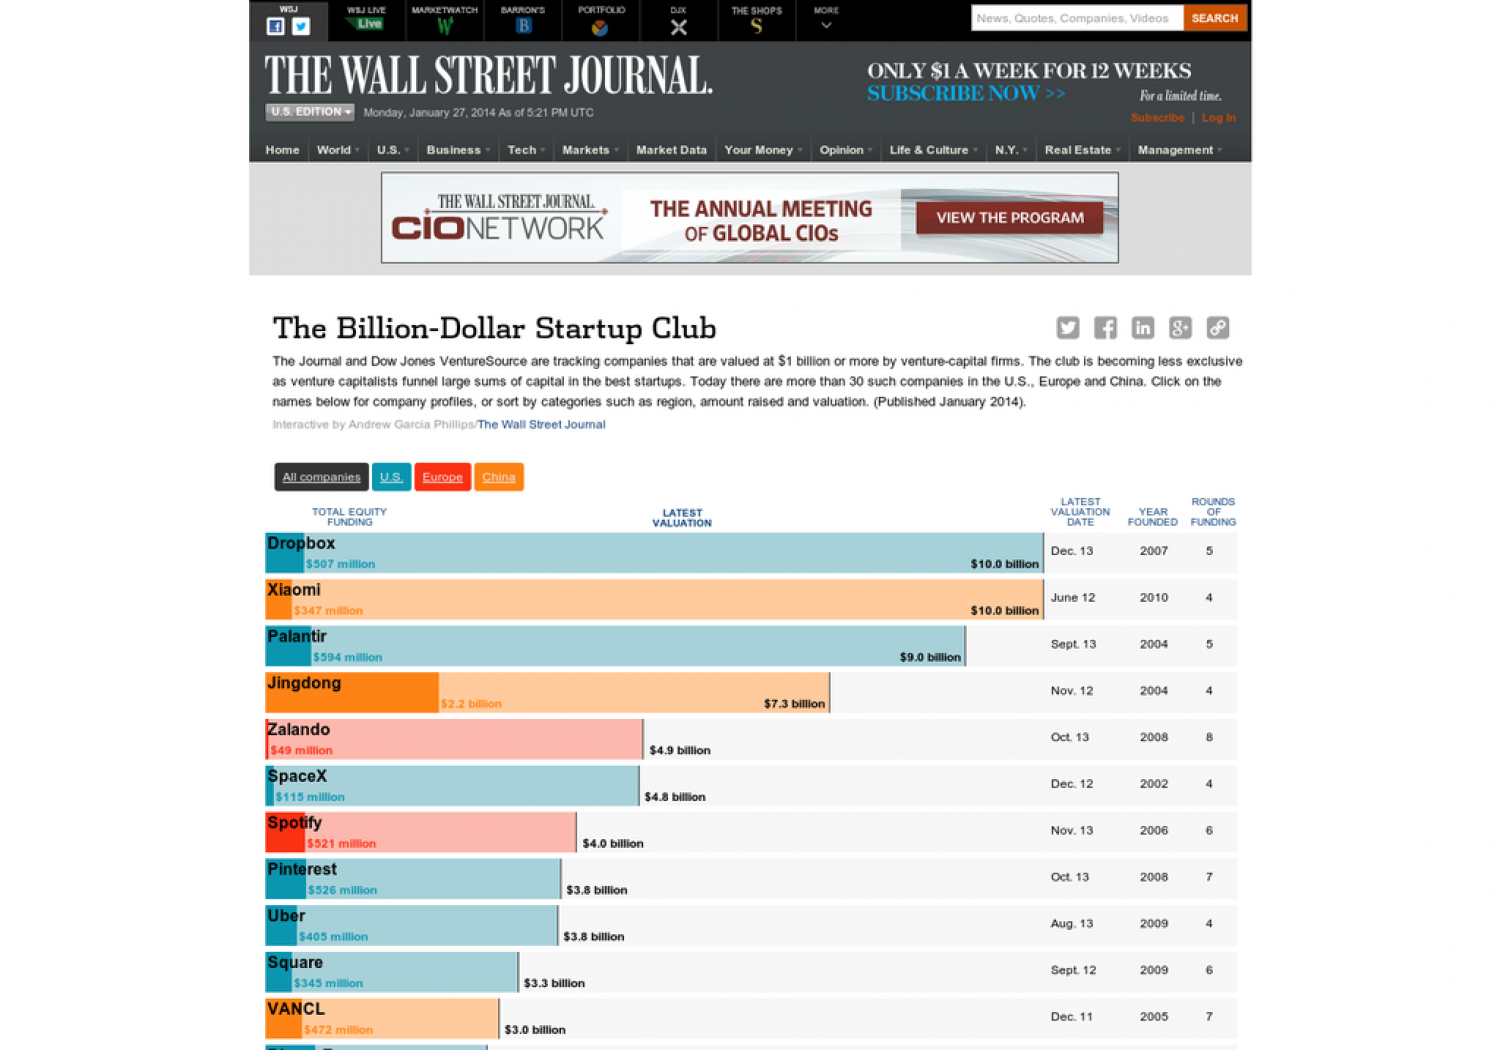 The Billion-Dollar Startup Club Infographic